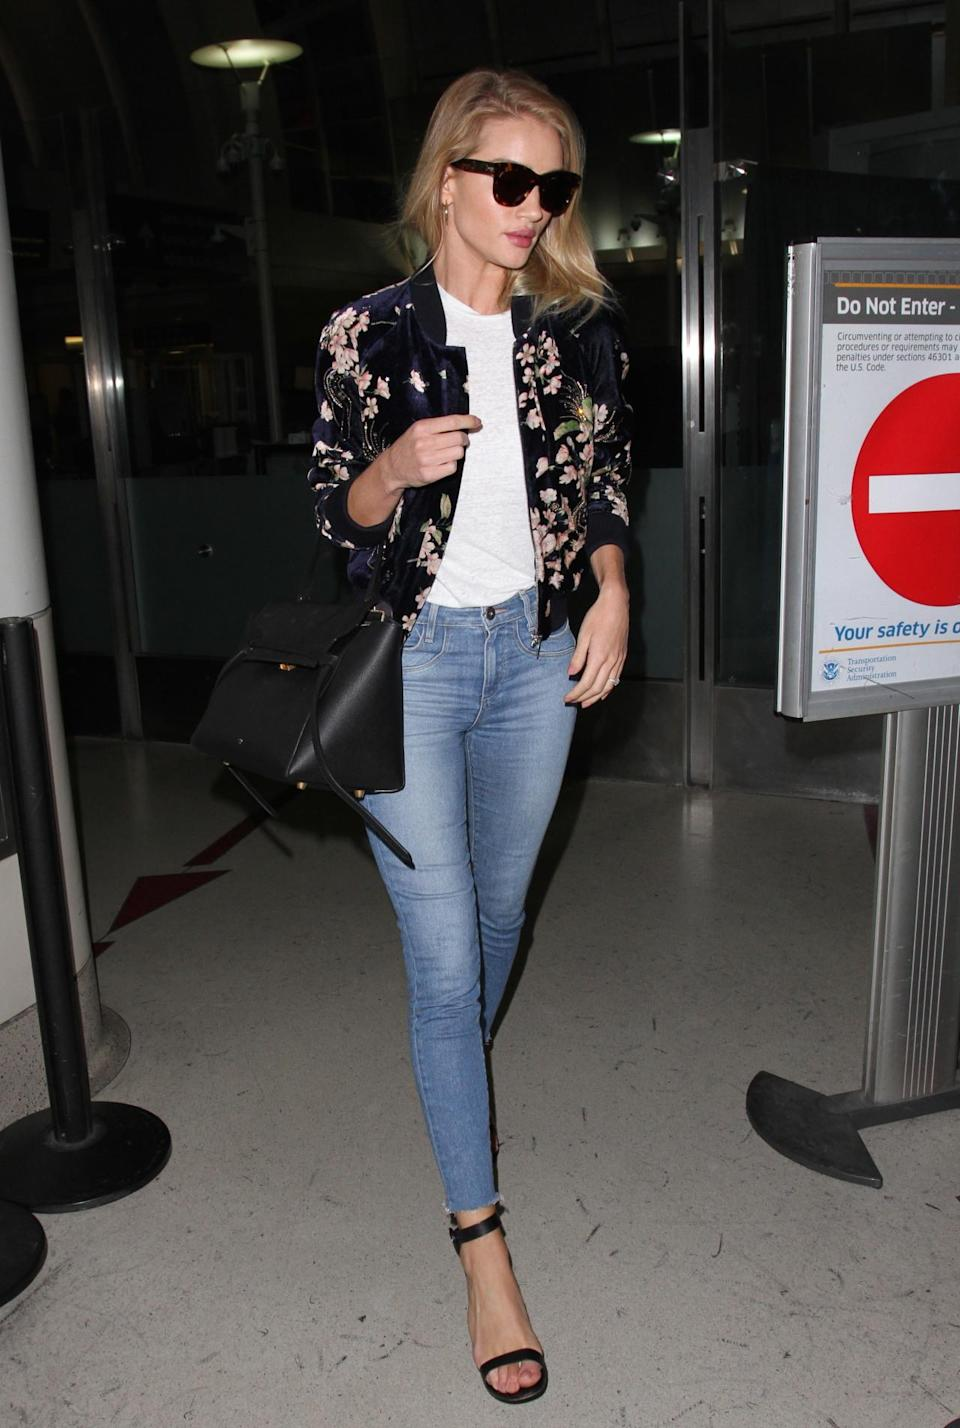 <p>Skinny jeans, strappy heels, a floral bomber and the latest It bag? RHW <i>really </i>knows how to do airport style. <i>(Photo by Splash News)</i></p>